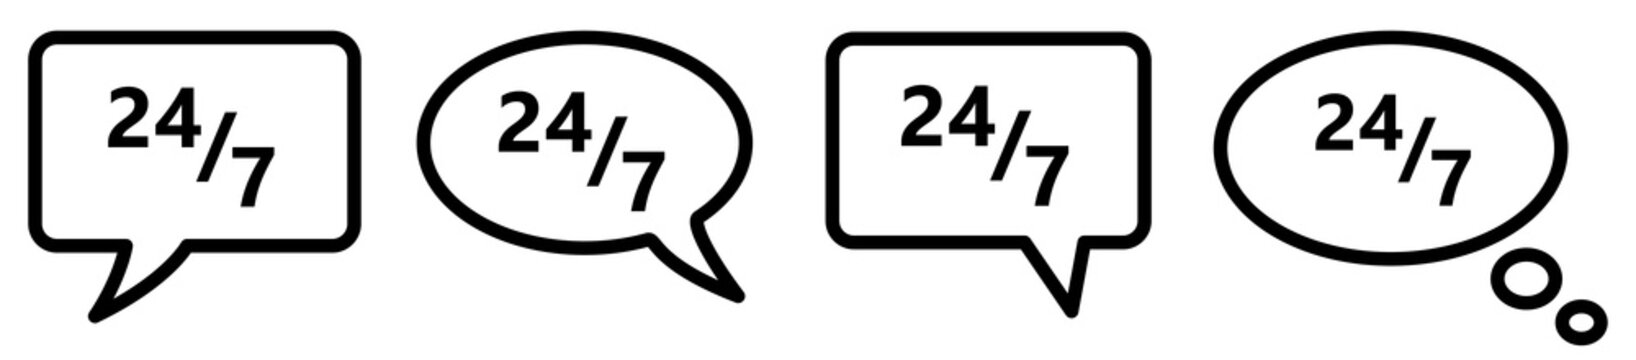 24 7 icon in speech bubble, different version. Contact for nonstop support concept